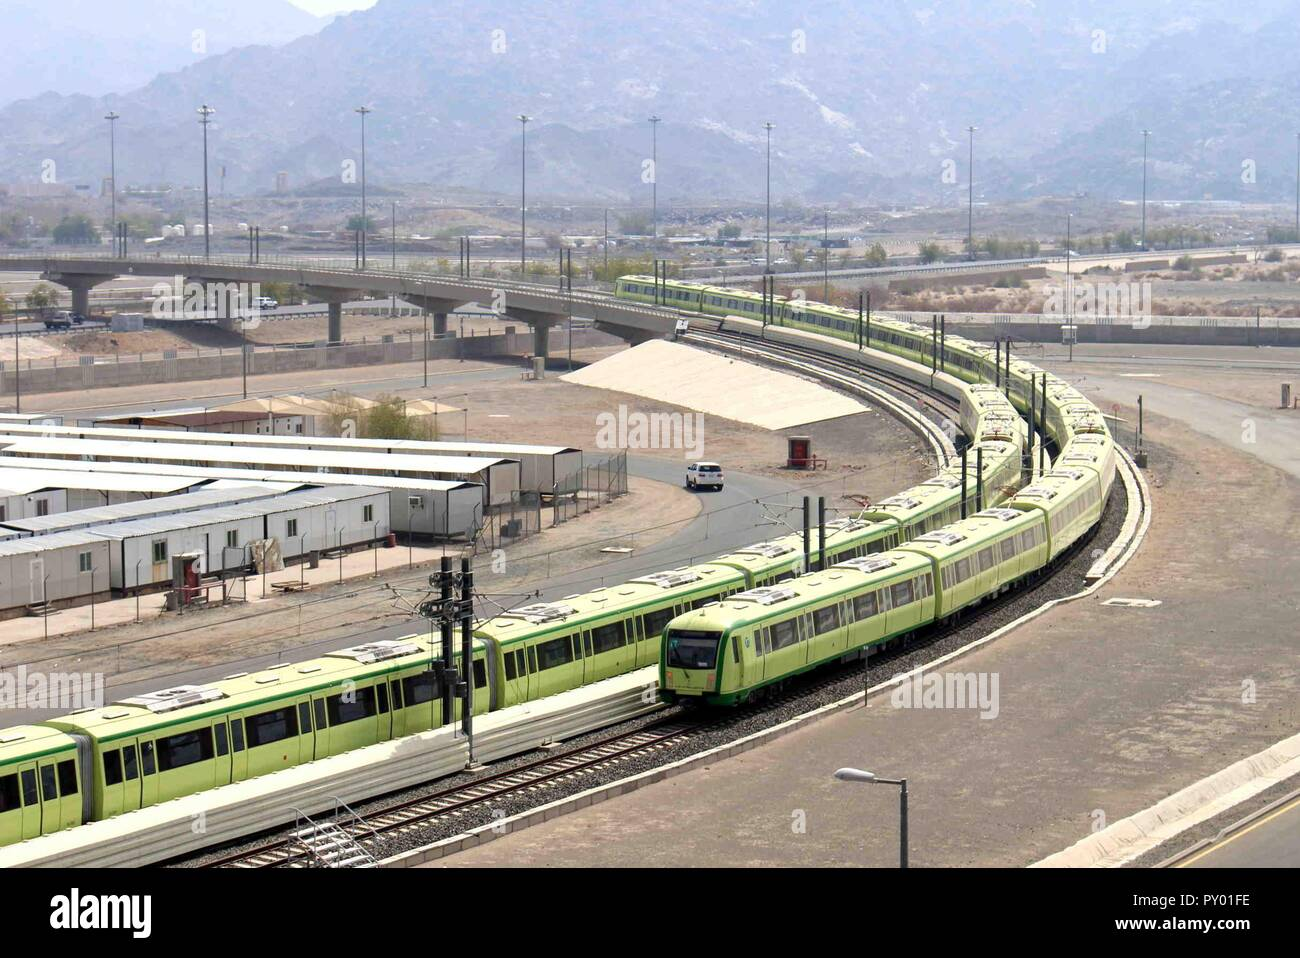 (181025) -- BEIJING, Oct. 25, 2018 (Xinhua) -- The Mecca Light Rail is tested in Mecca, Saudi Arabia, on June 20, 2018. (Xinhua/Dong Liwei) (yy) - Stock Image